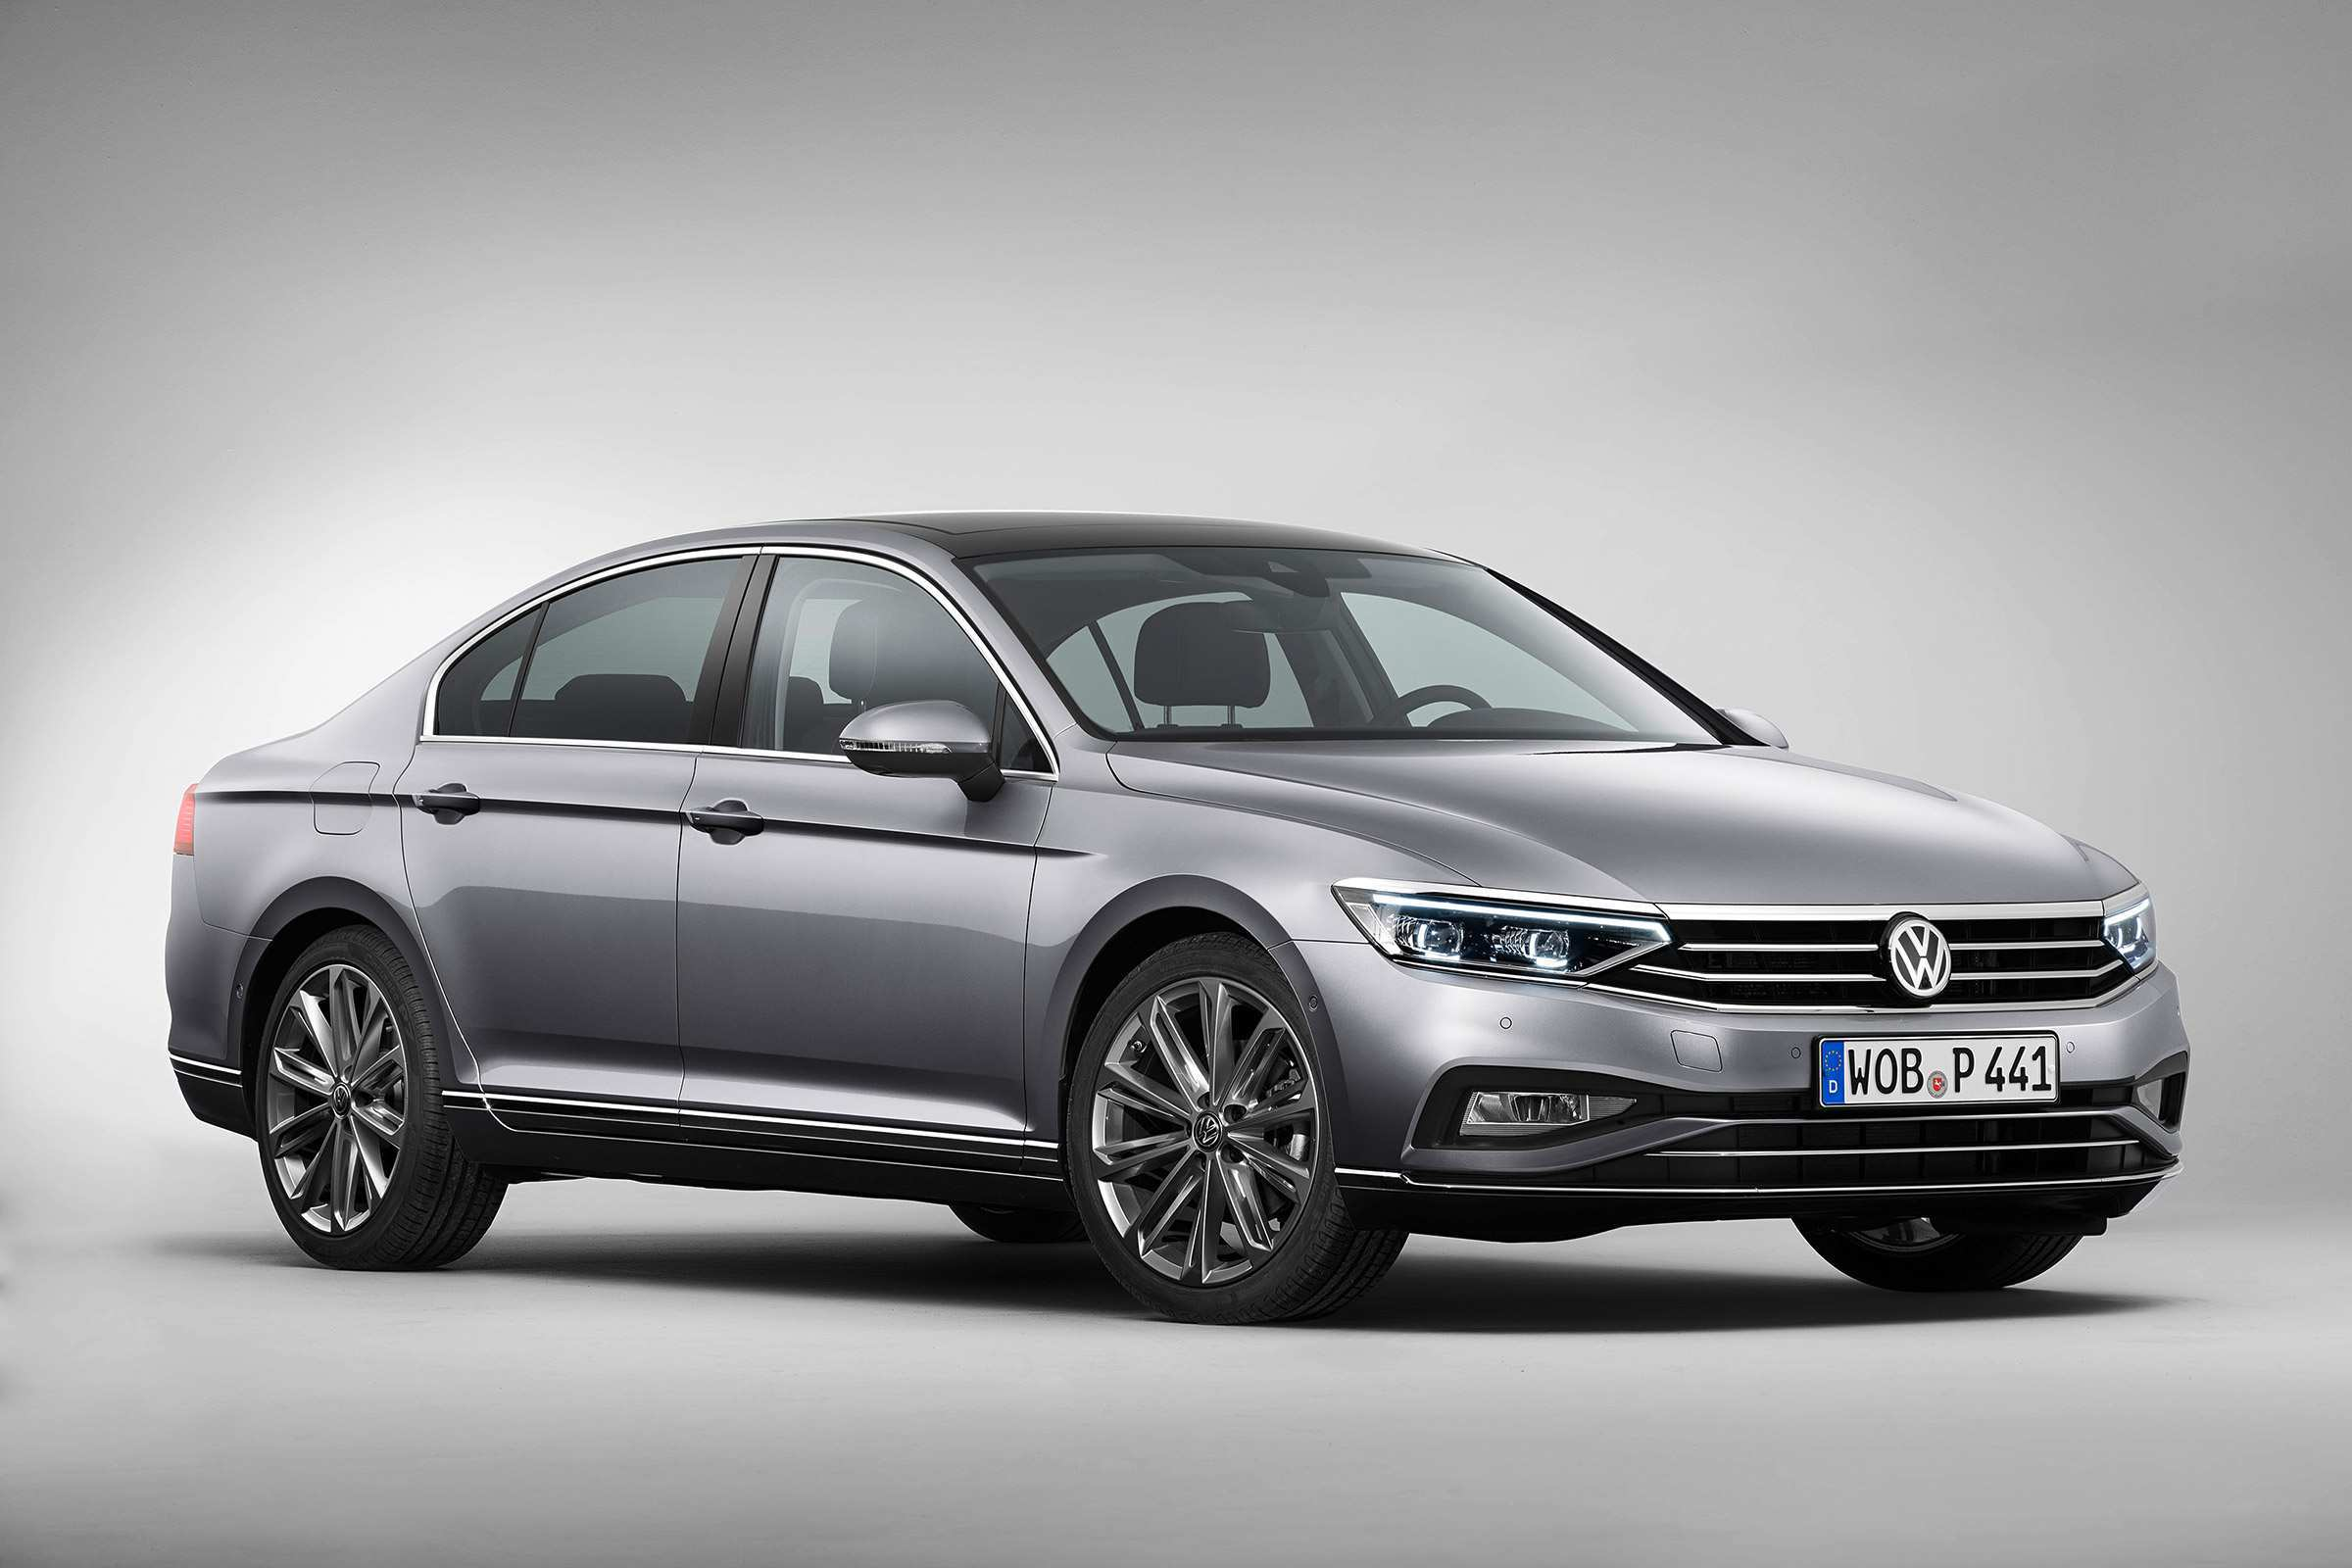 13 All New Buy Now Pay In 2020 Volkswagen Redesign for Buy Now Pay In 2020 Volkswagen